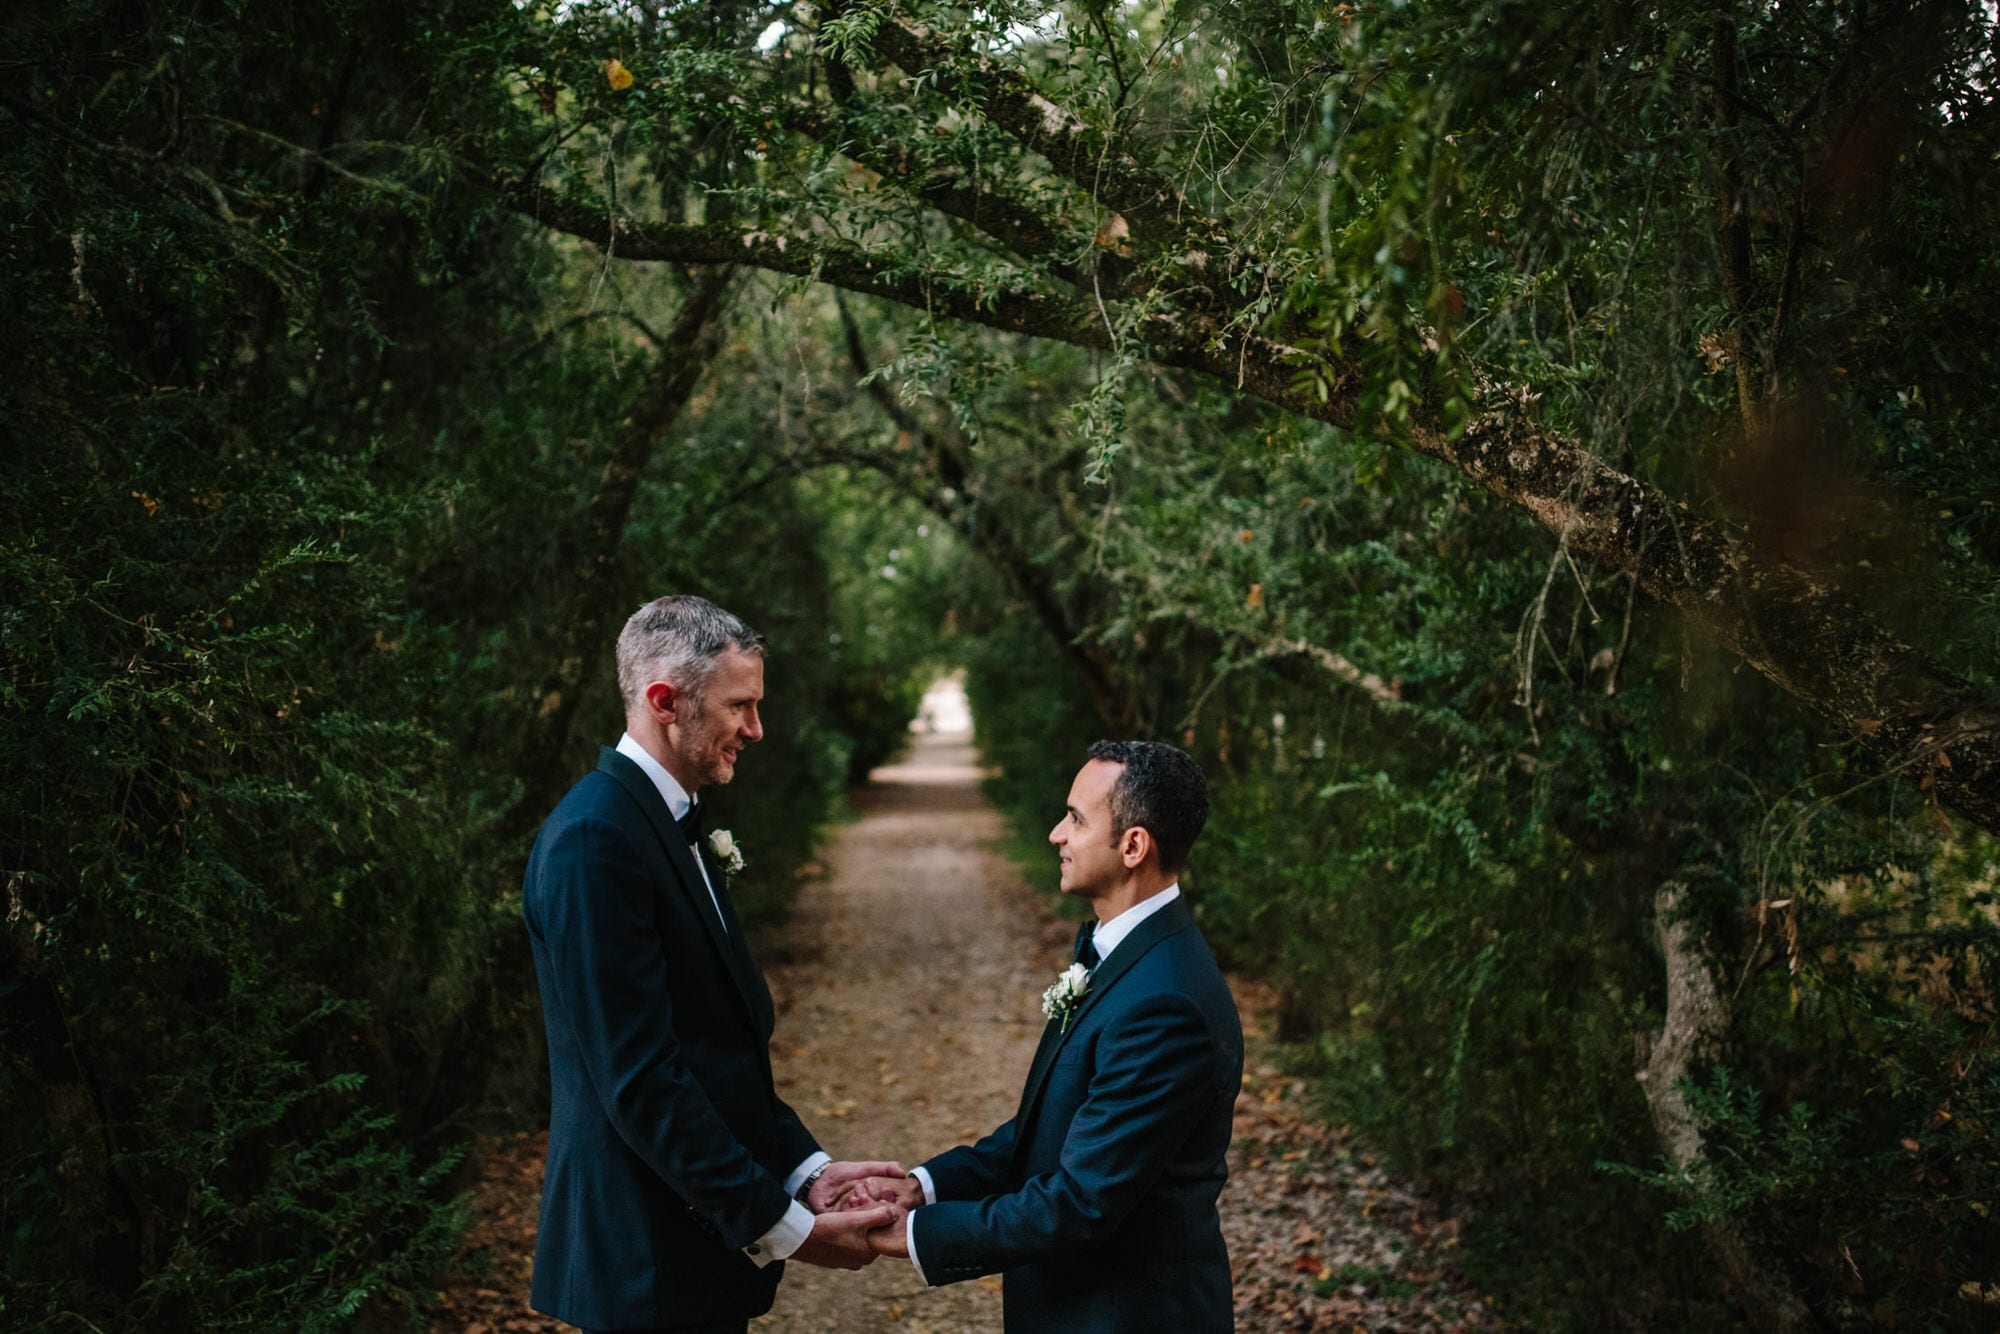 Paddy and David: Gay Destination Wedding in Lisbon